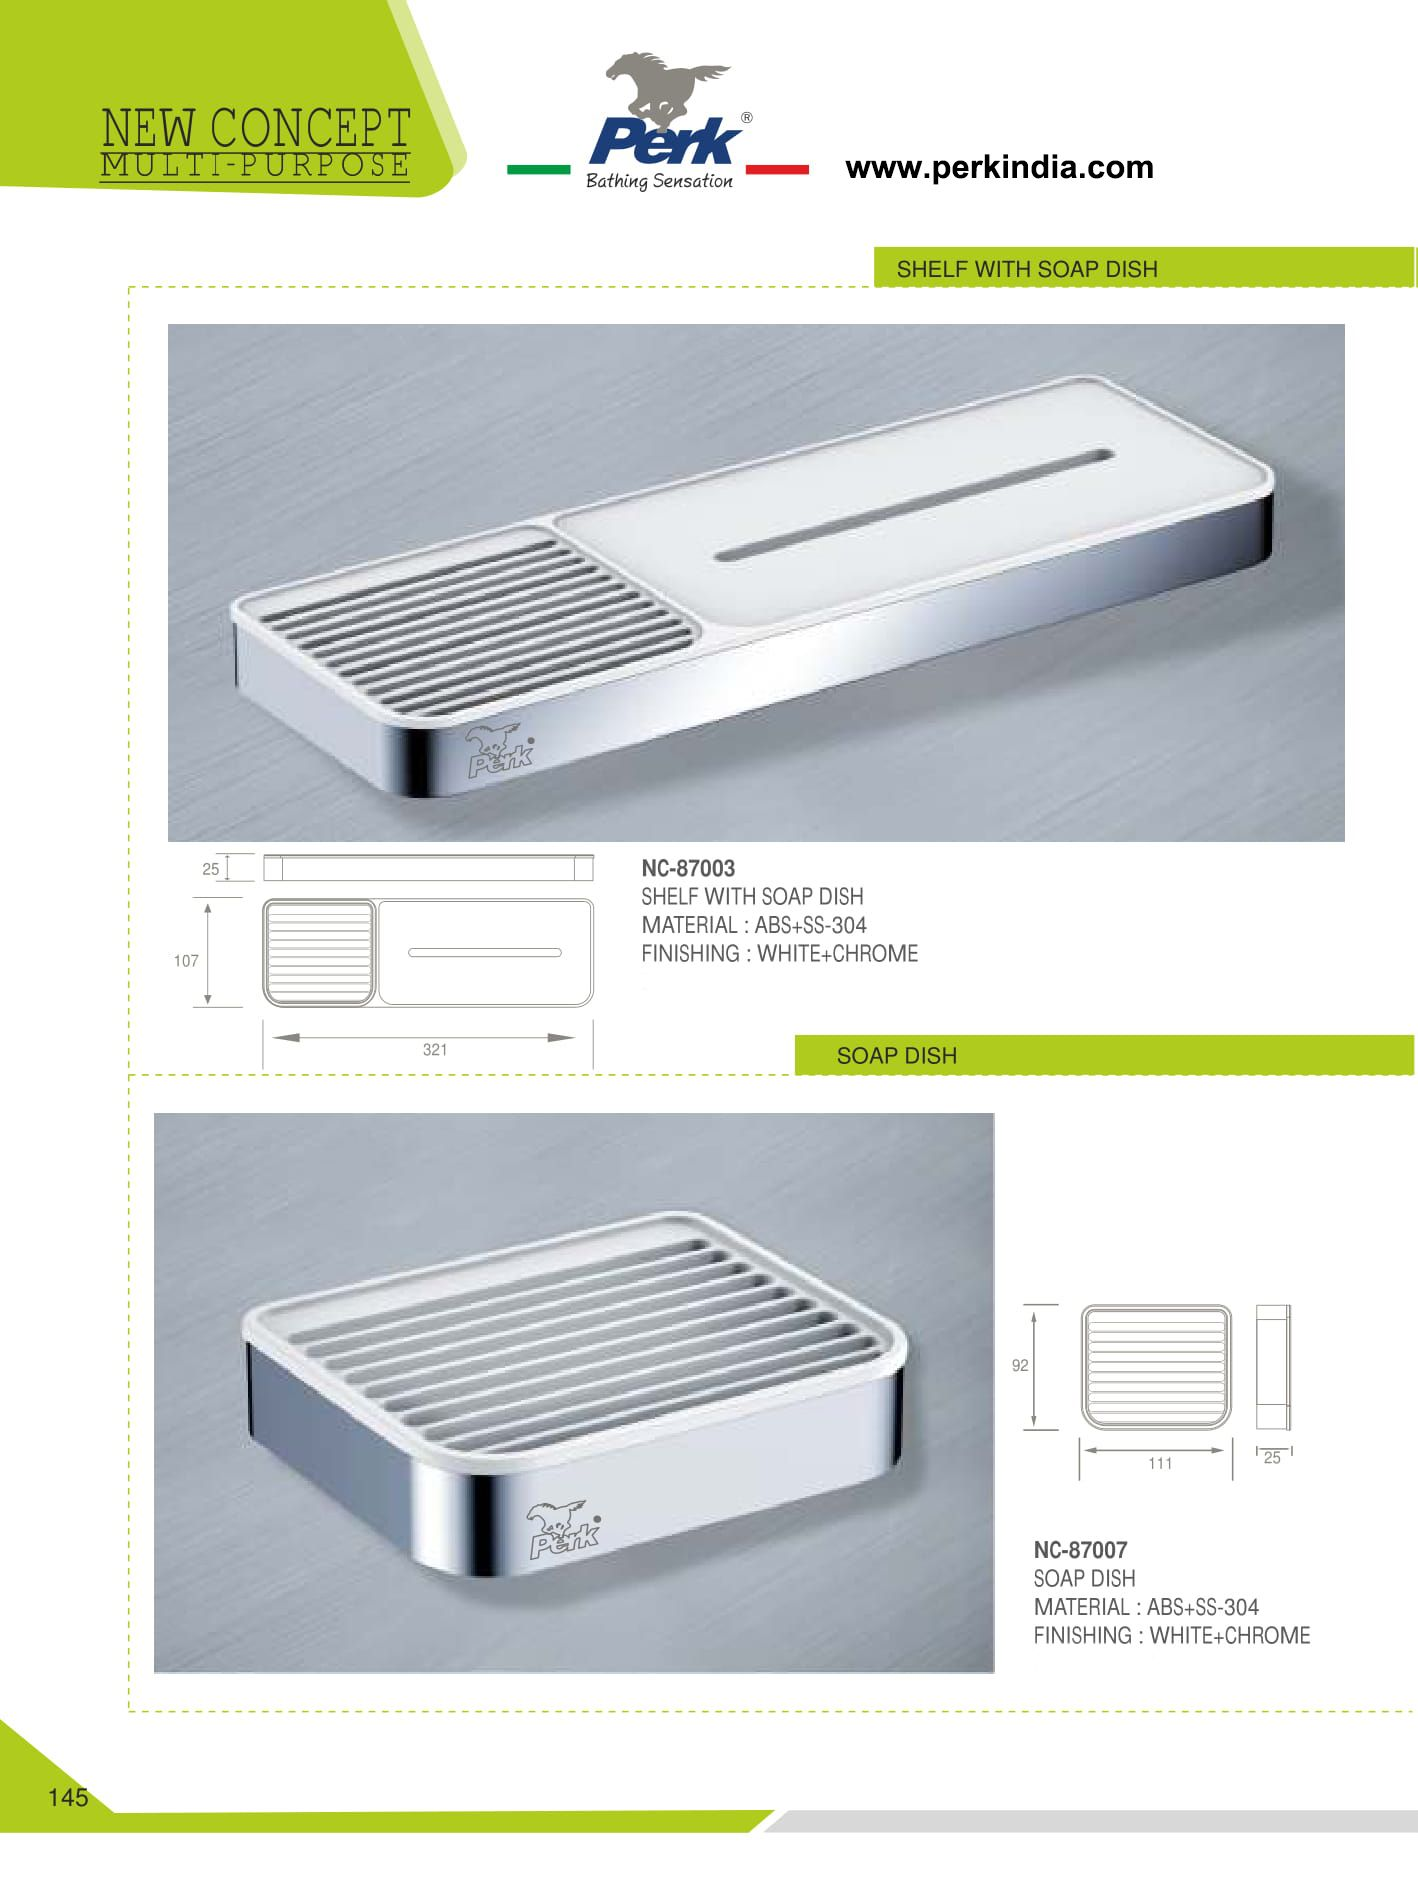 Shelf With Shop Dish Manufactured By Perkindia With Images